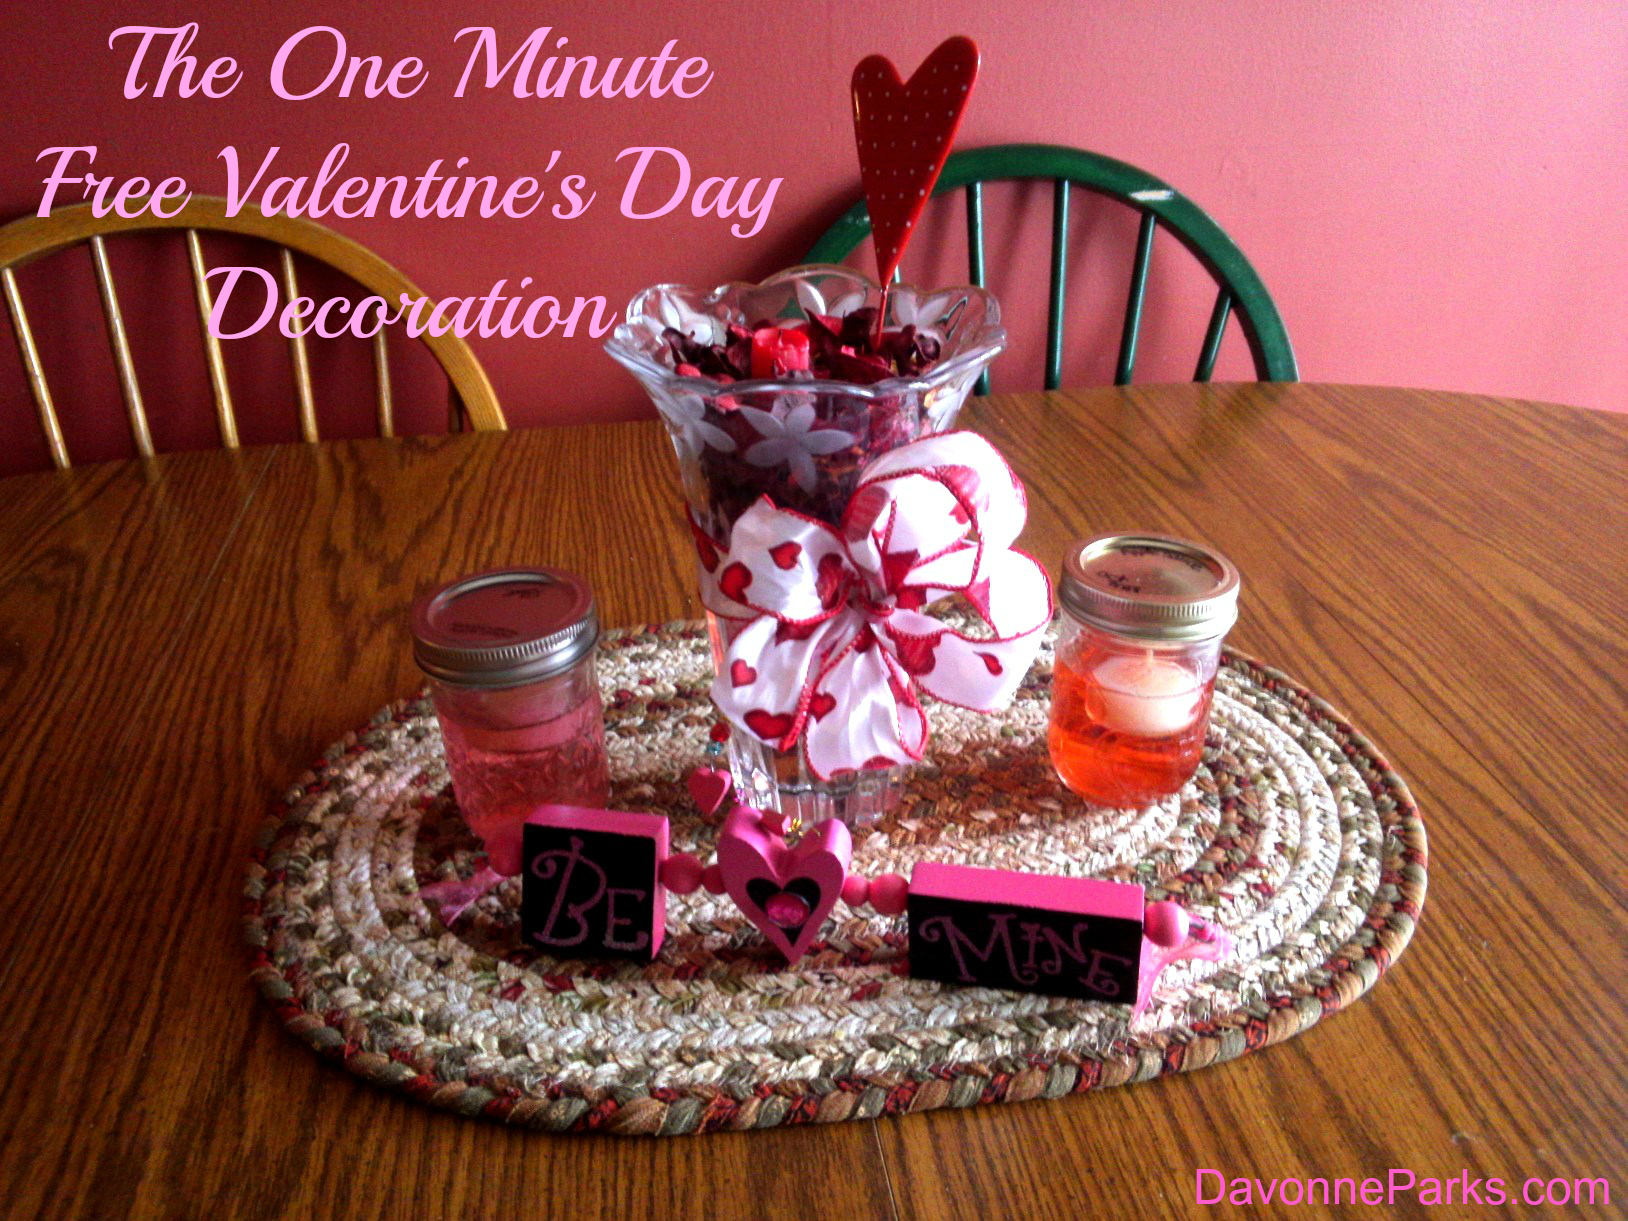 The Free, One-Minute Valentine's Day Decoration